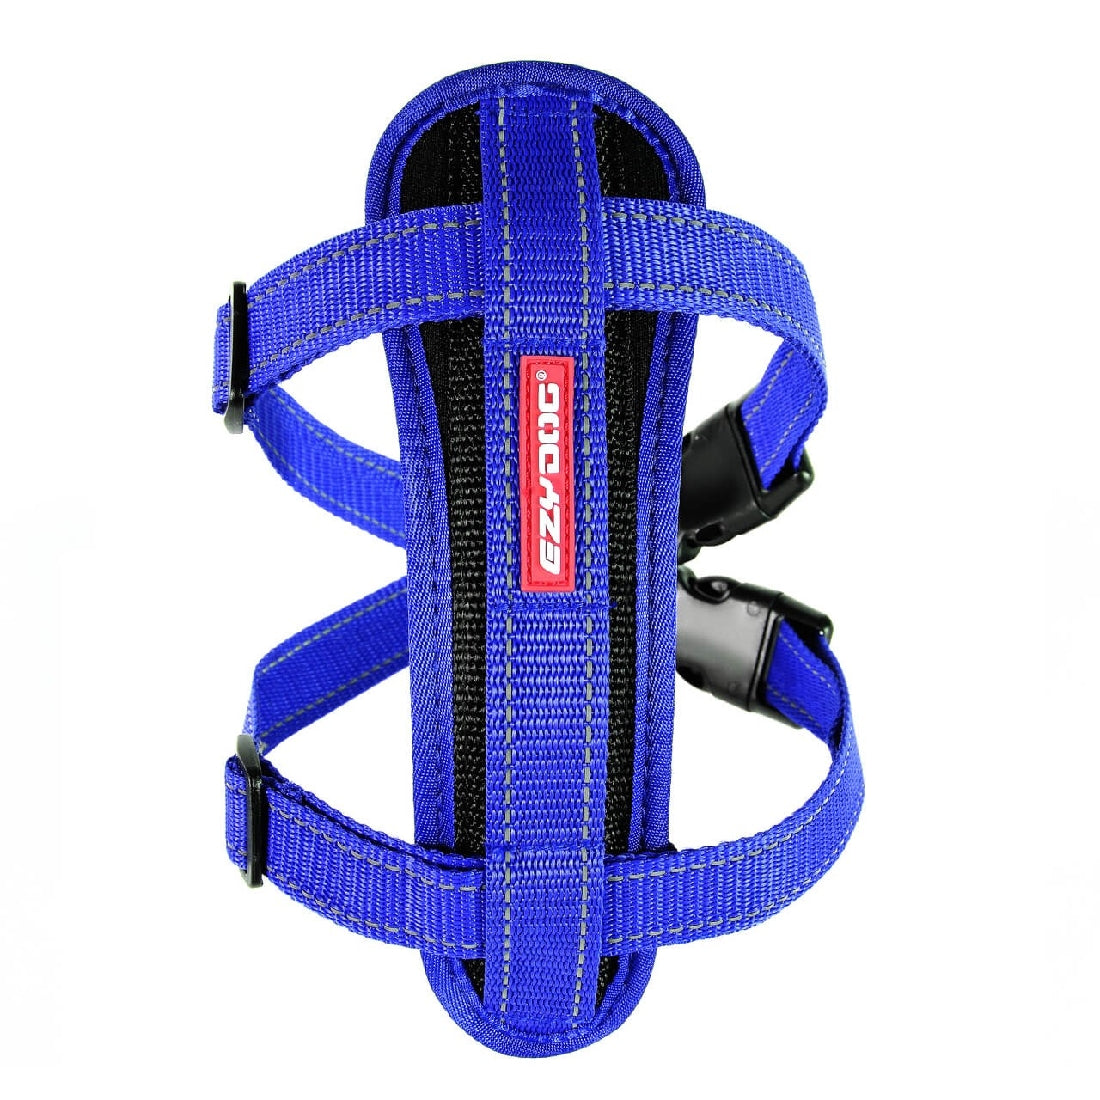 EZY DOG CHEST PLATE HARNESS BLUE SMALL